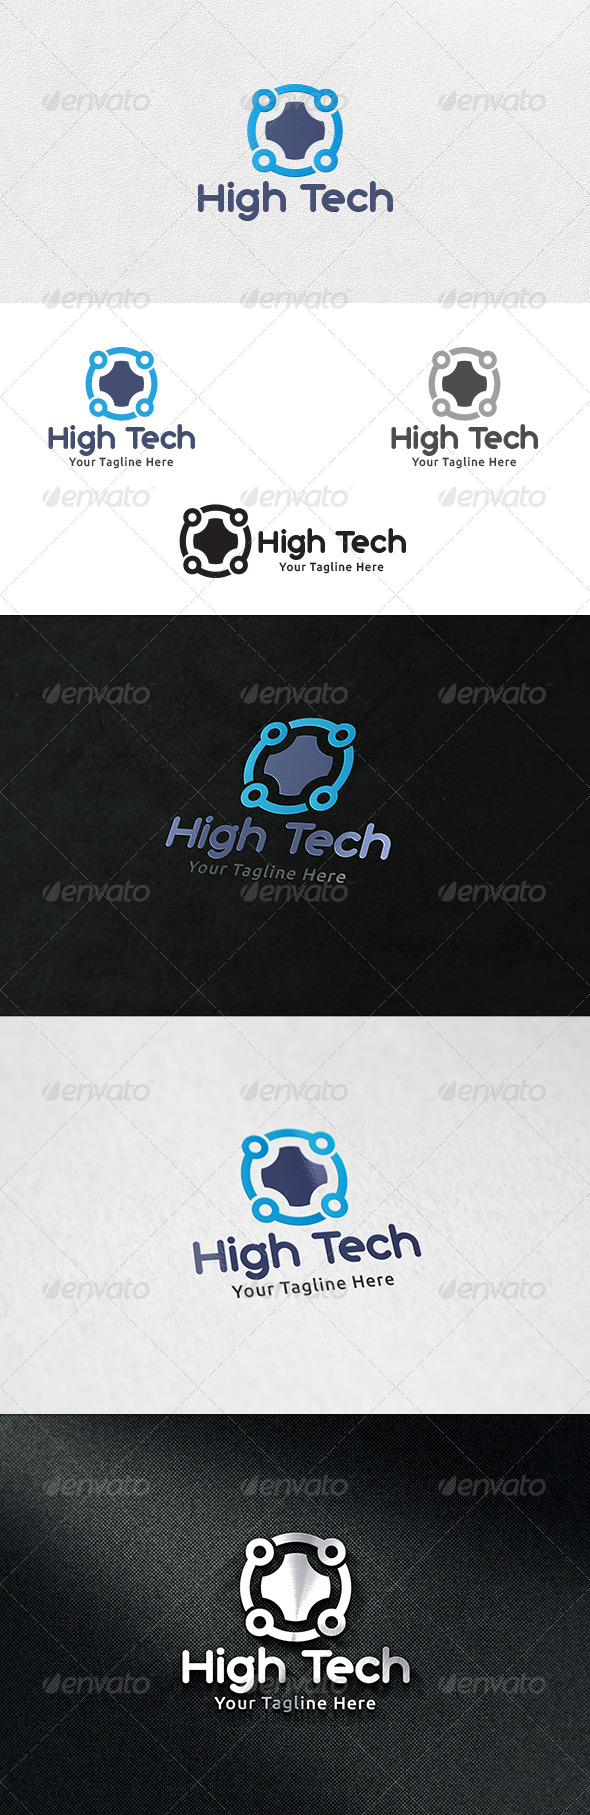 GraphicRiver High Tech Logo Template 6512242